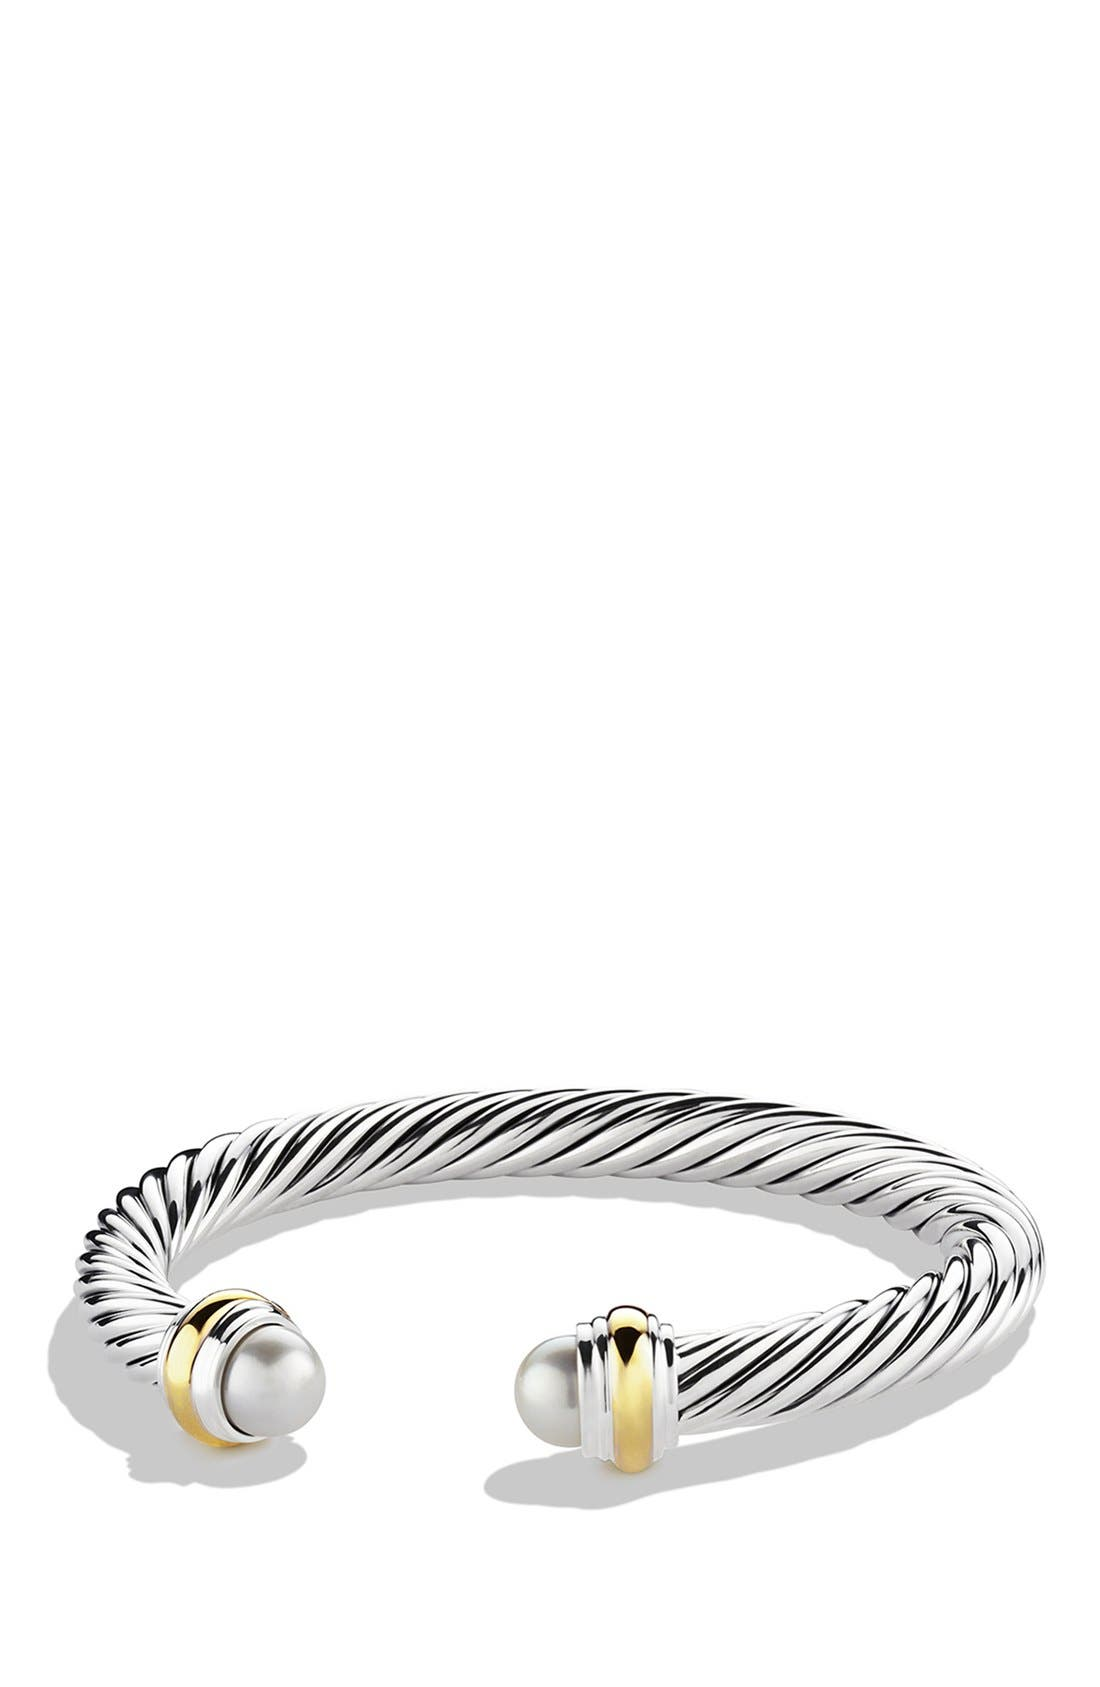 Alternate Image 1 Selected - David Yurman Cable Classics Bracelet with Semiprecious Stones